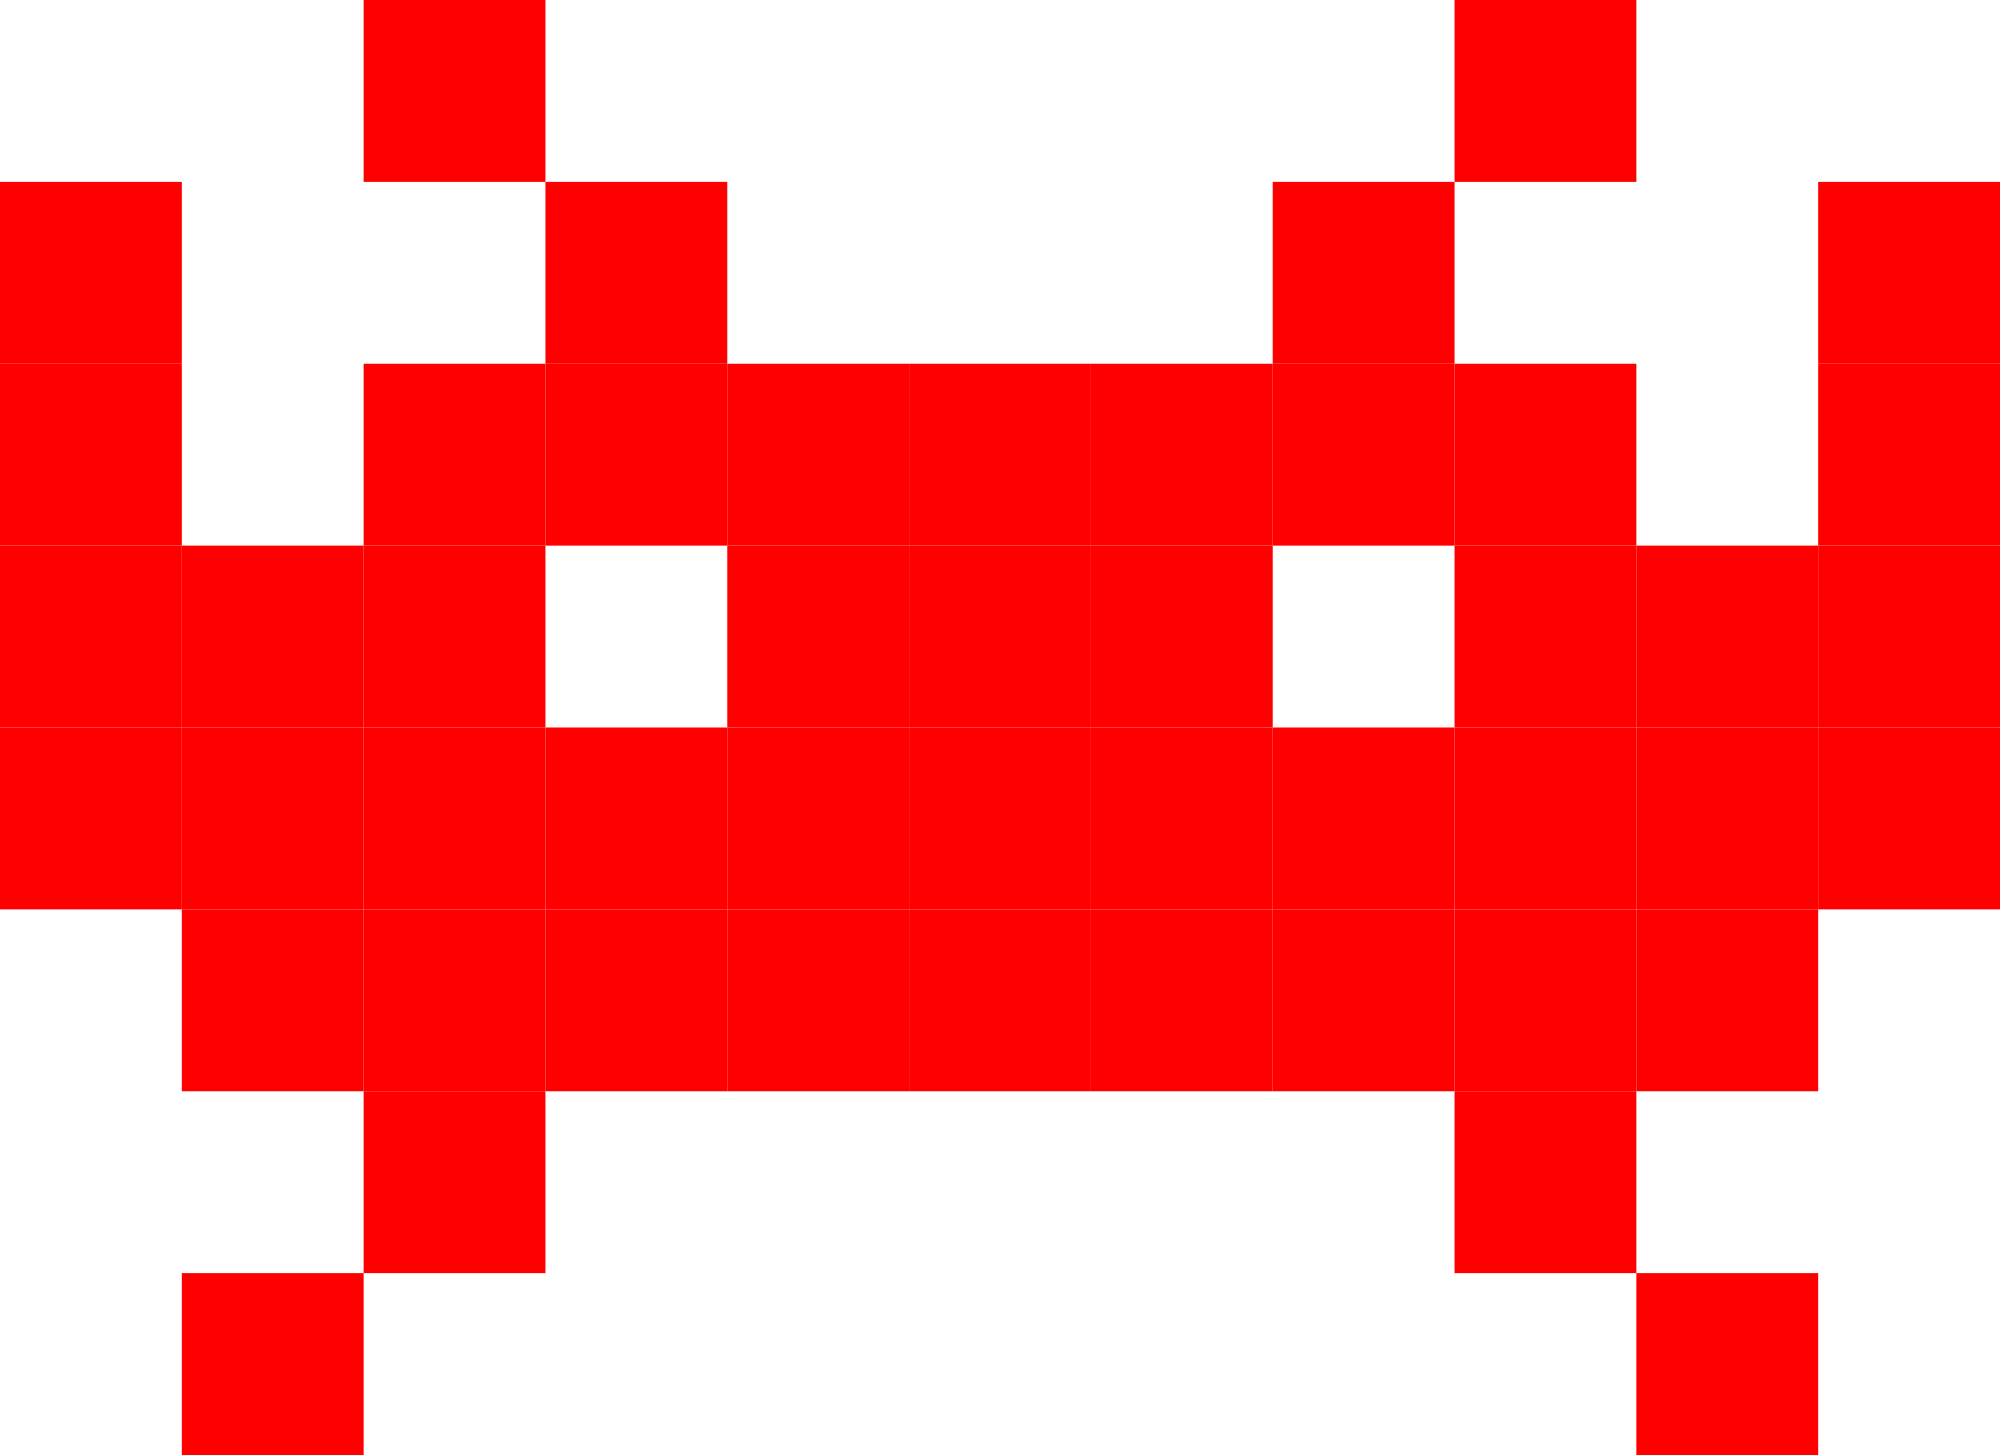 Space invaders alien png. File svg wikimedia commons